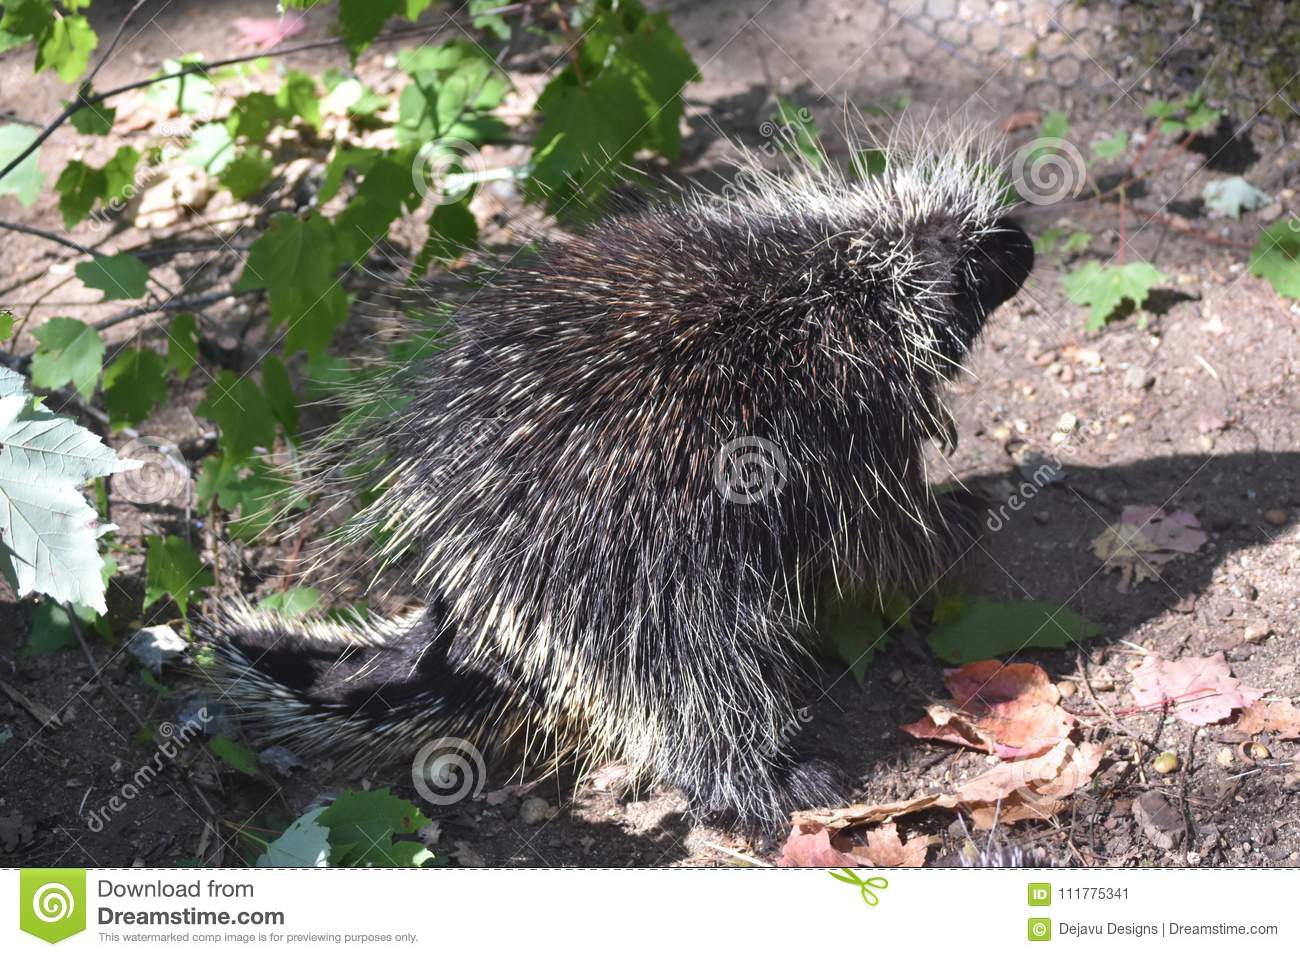 Adorable porcupine walking around with its head up